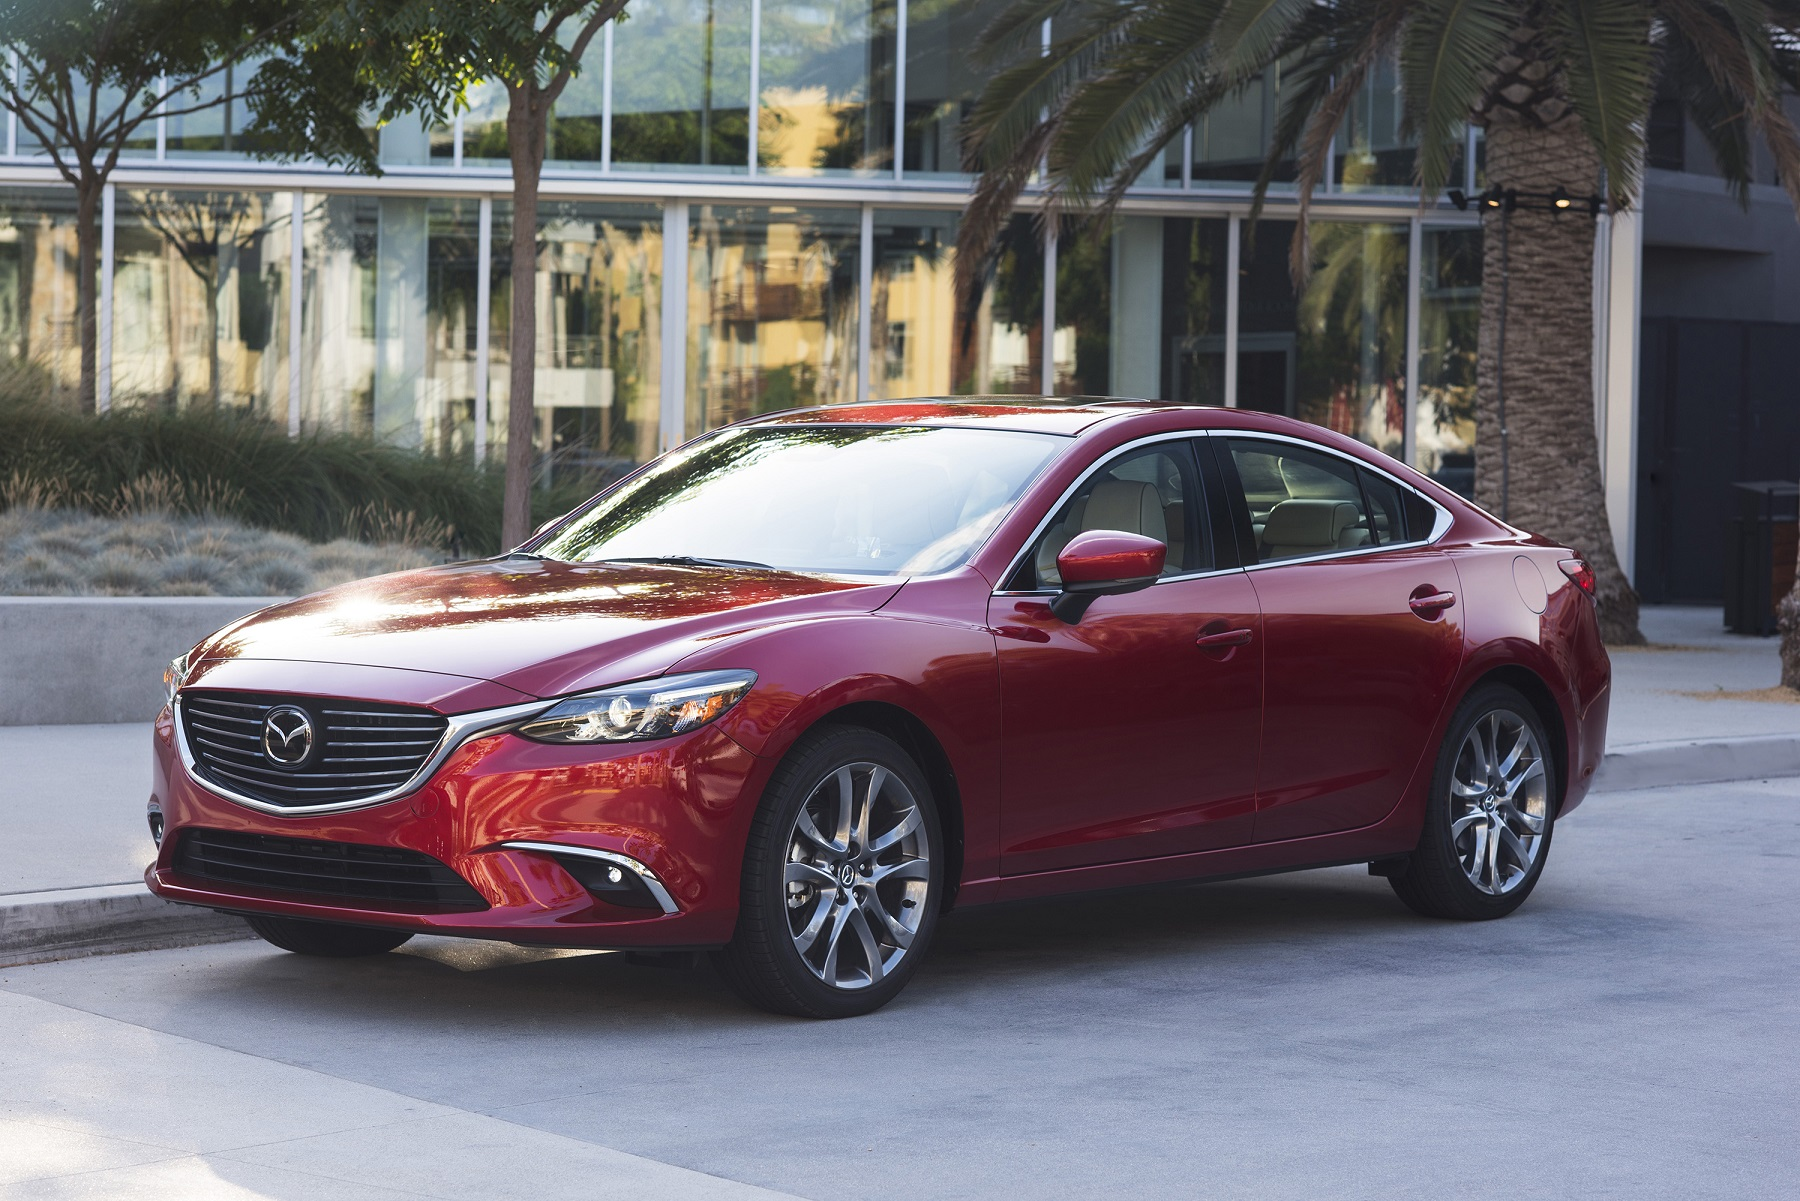 2017 Mazda6: Solid, Traditional Sedan - New on Wheels - - GrooveCar